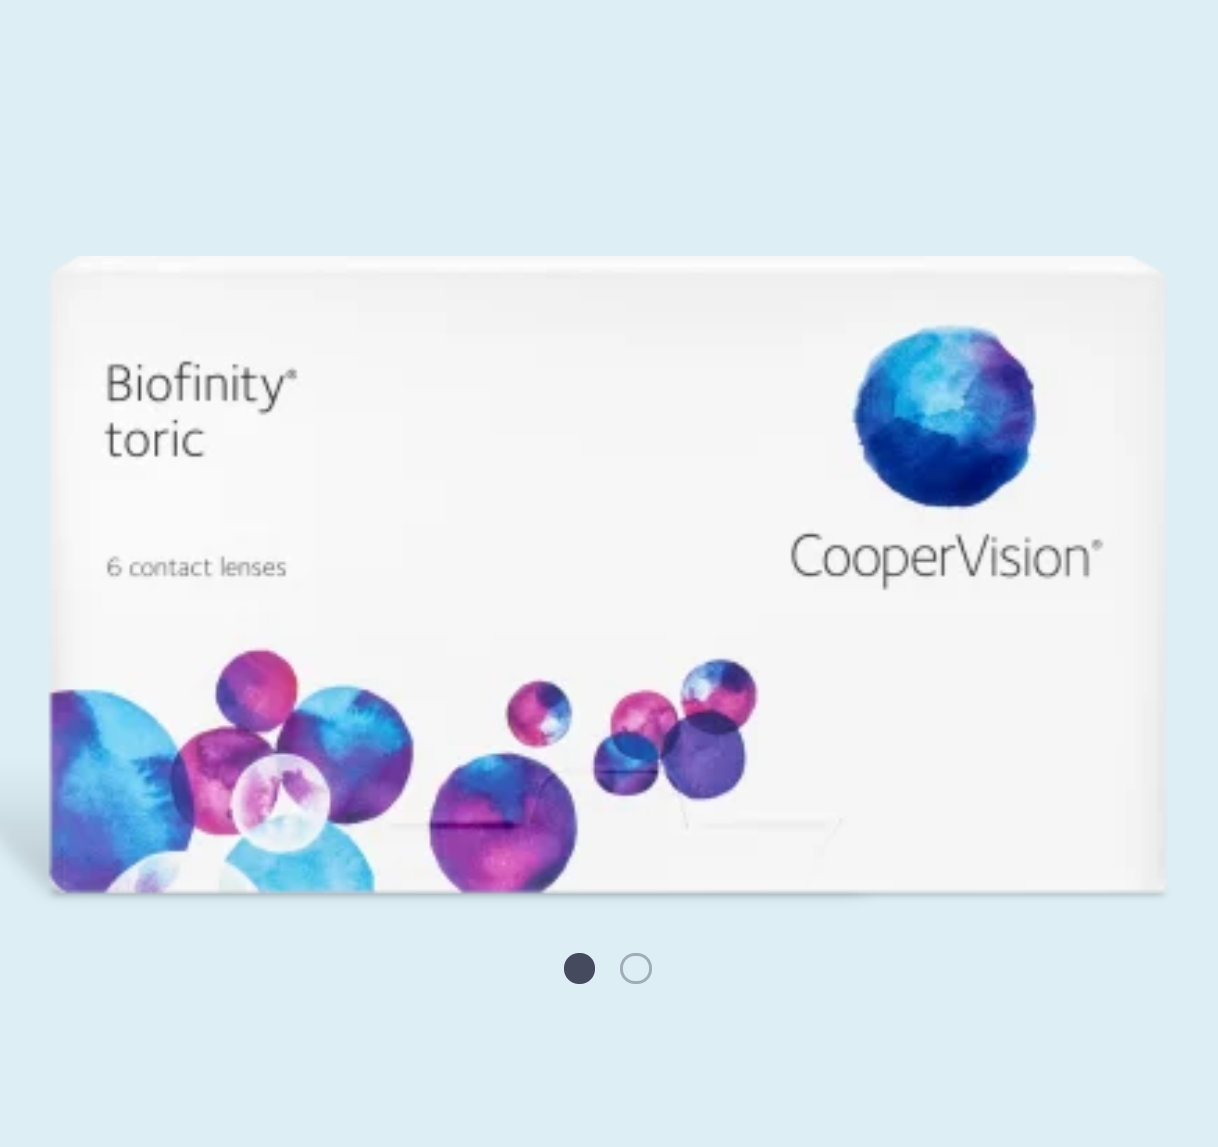 1800 CONTACTS 20% Off Sitewide For New Customers